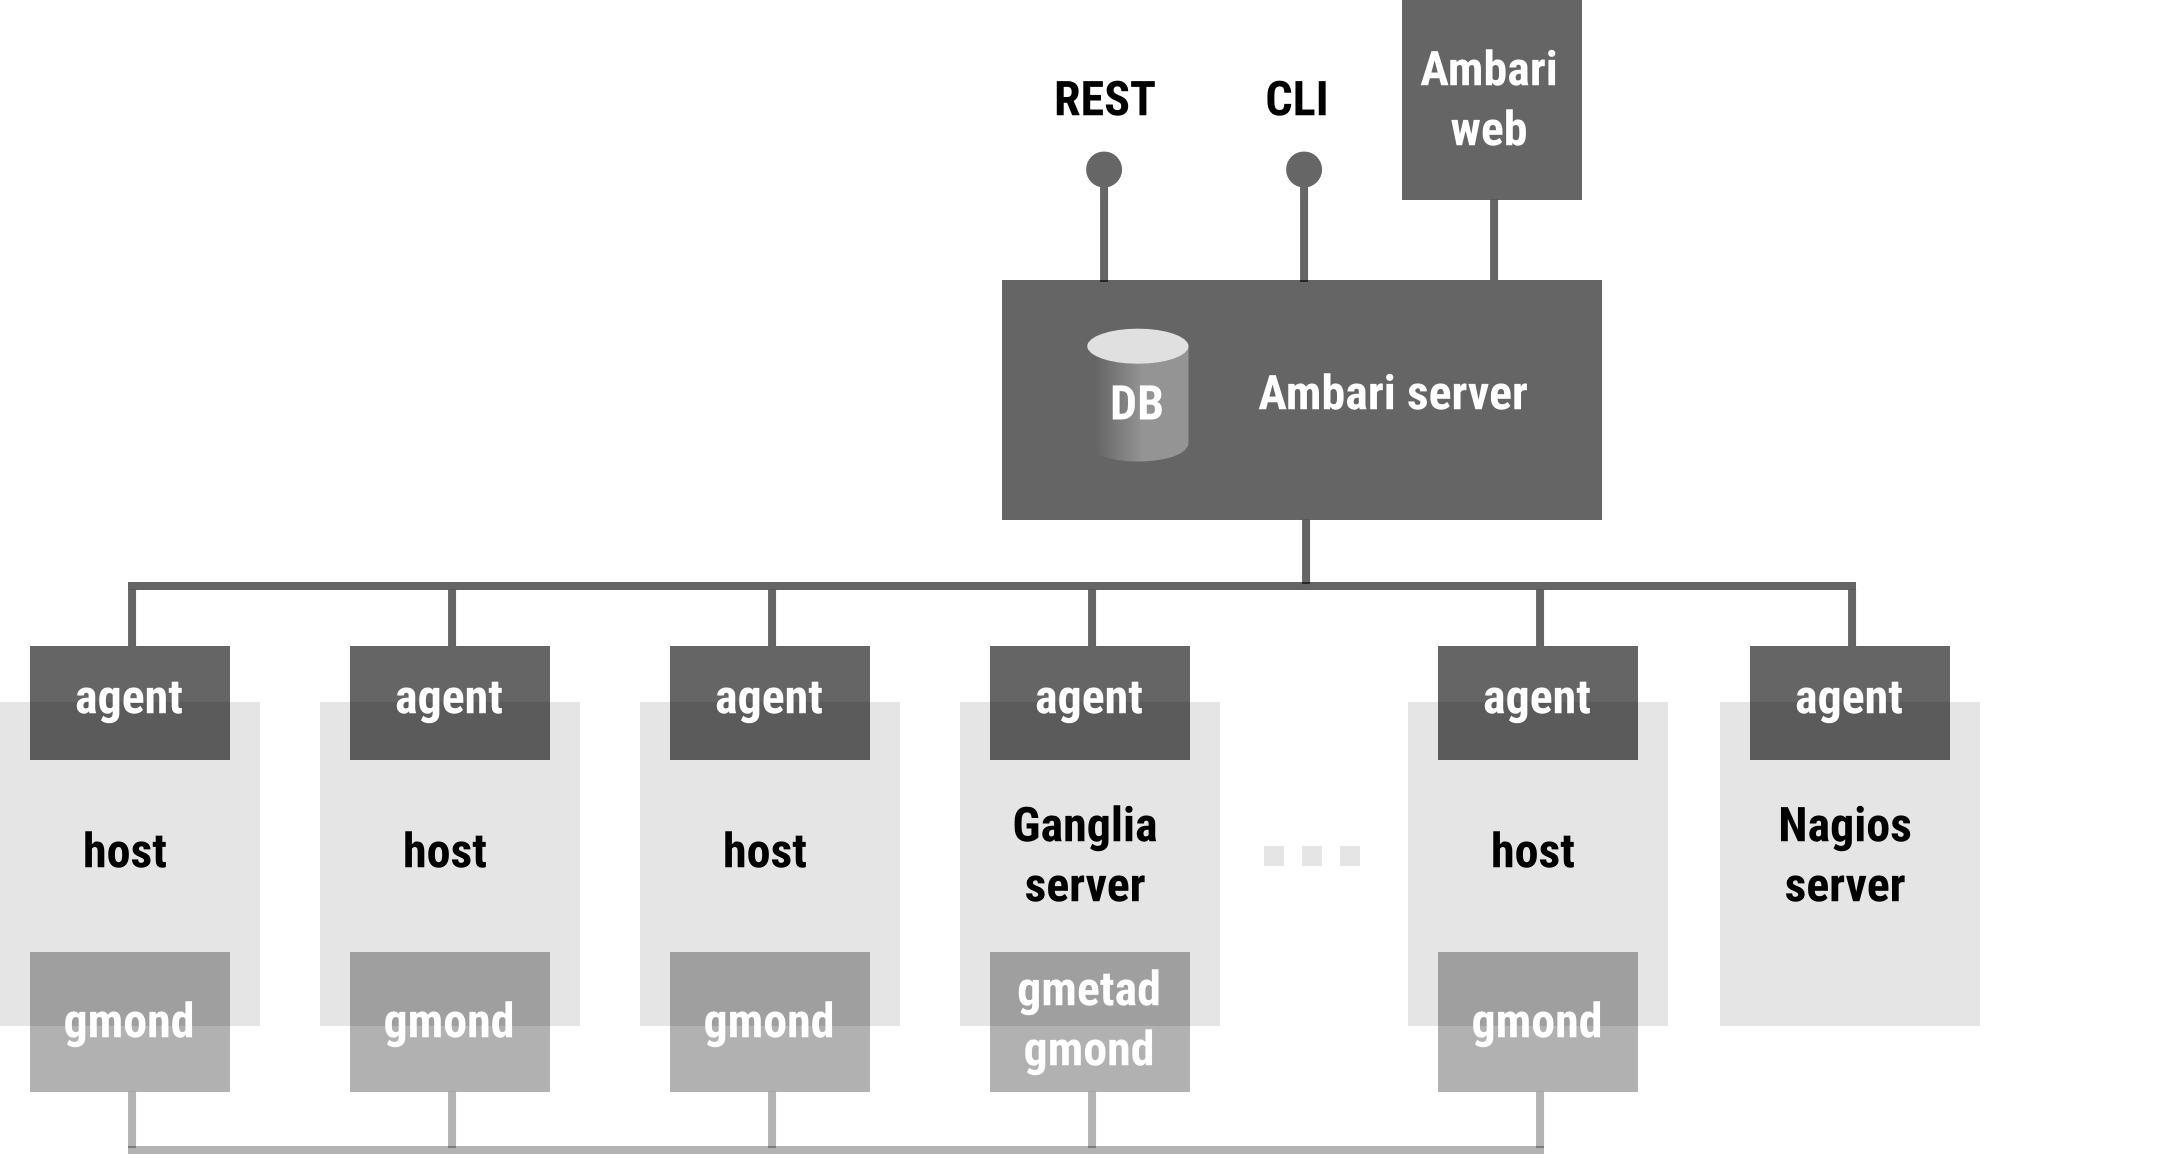 https://raw.githubusercontent.com/sequenceiq/periscope/master/docs/images/ambari-overview.png